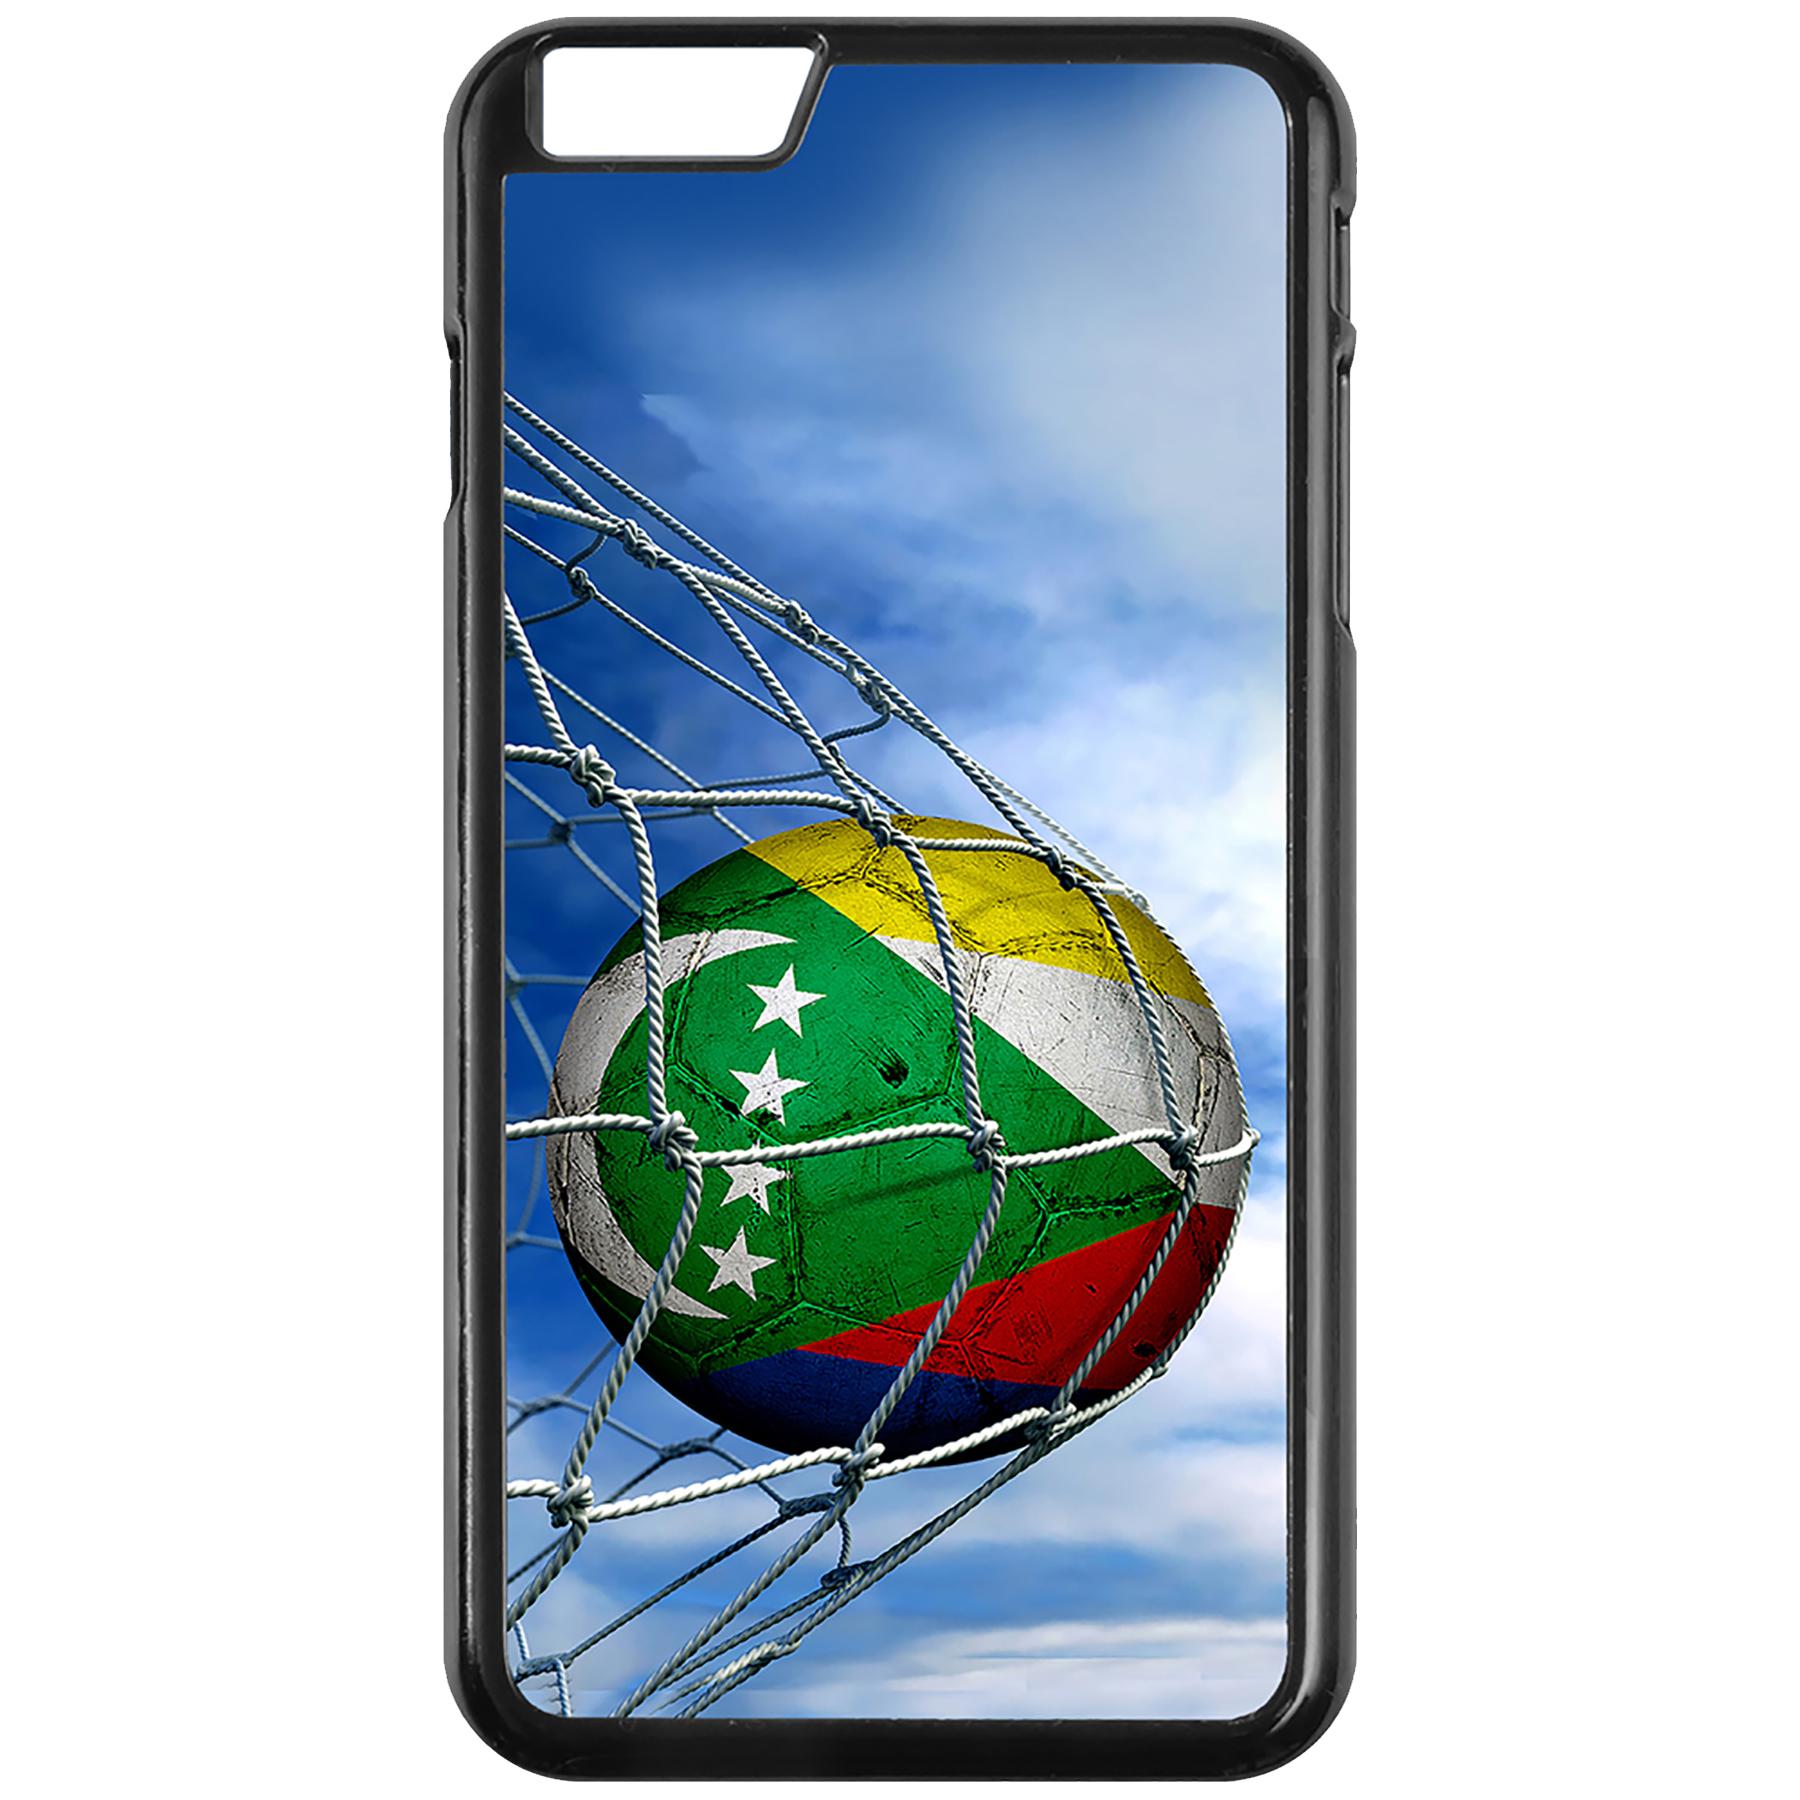 Apple-iPhone-Case-with-Flag-of-Comoros-Comorian-Many-Design-Options thumbnail 97